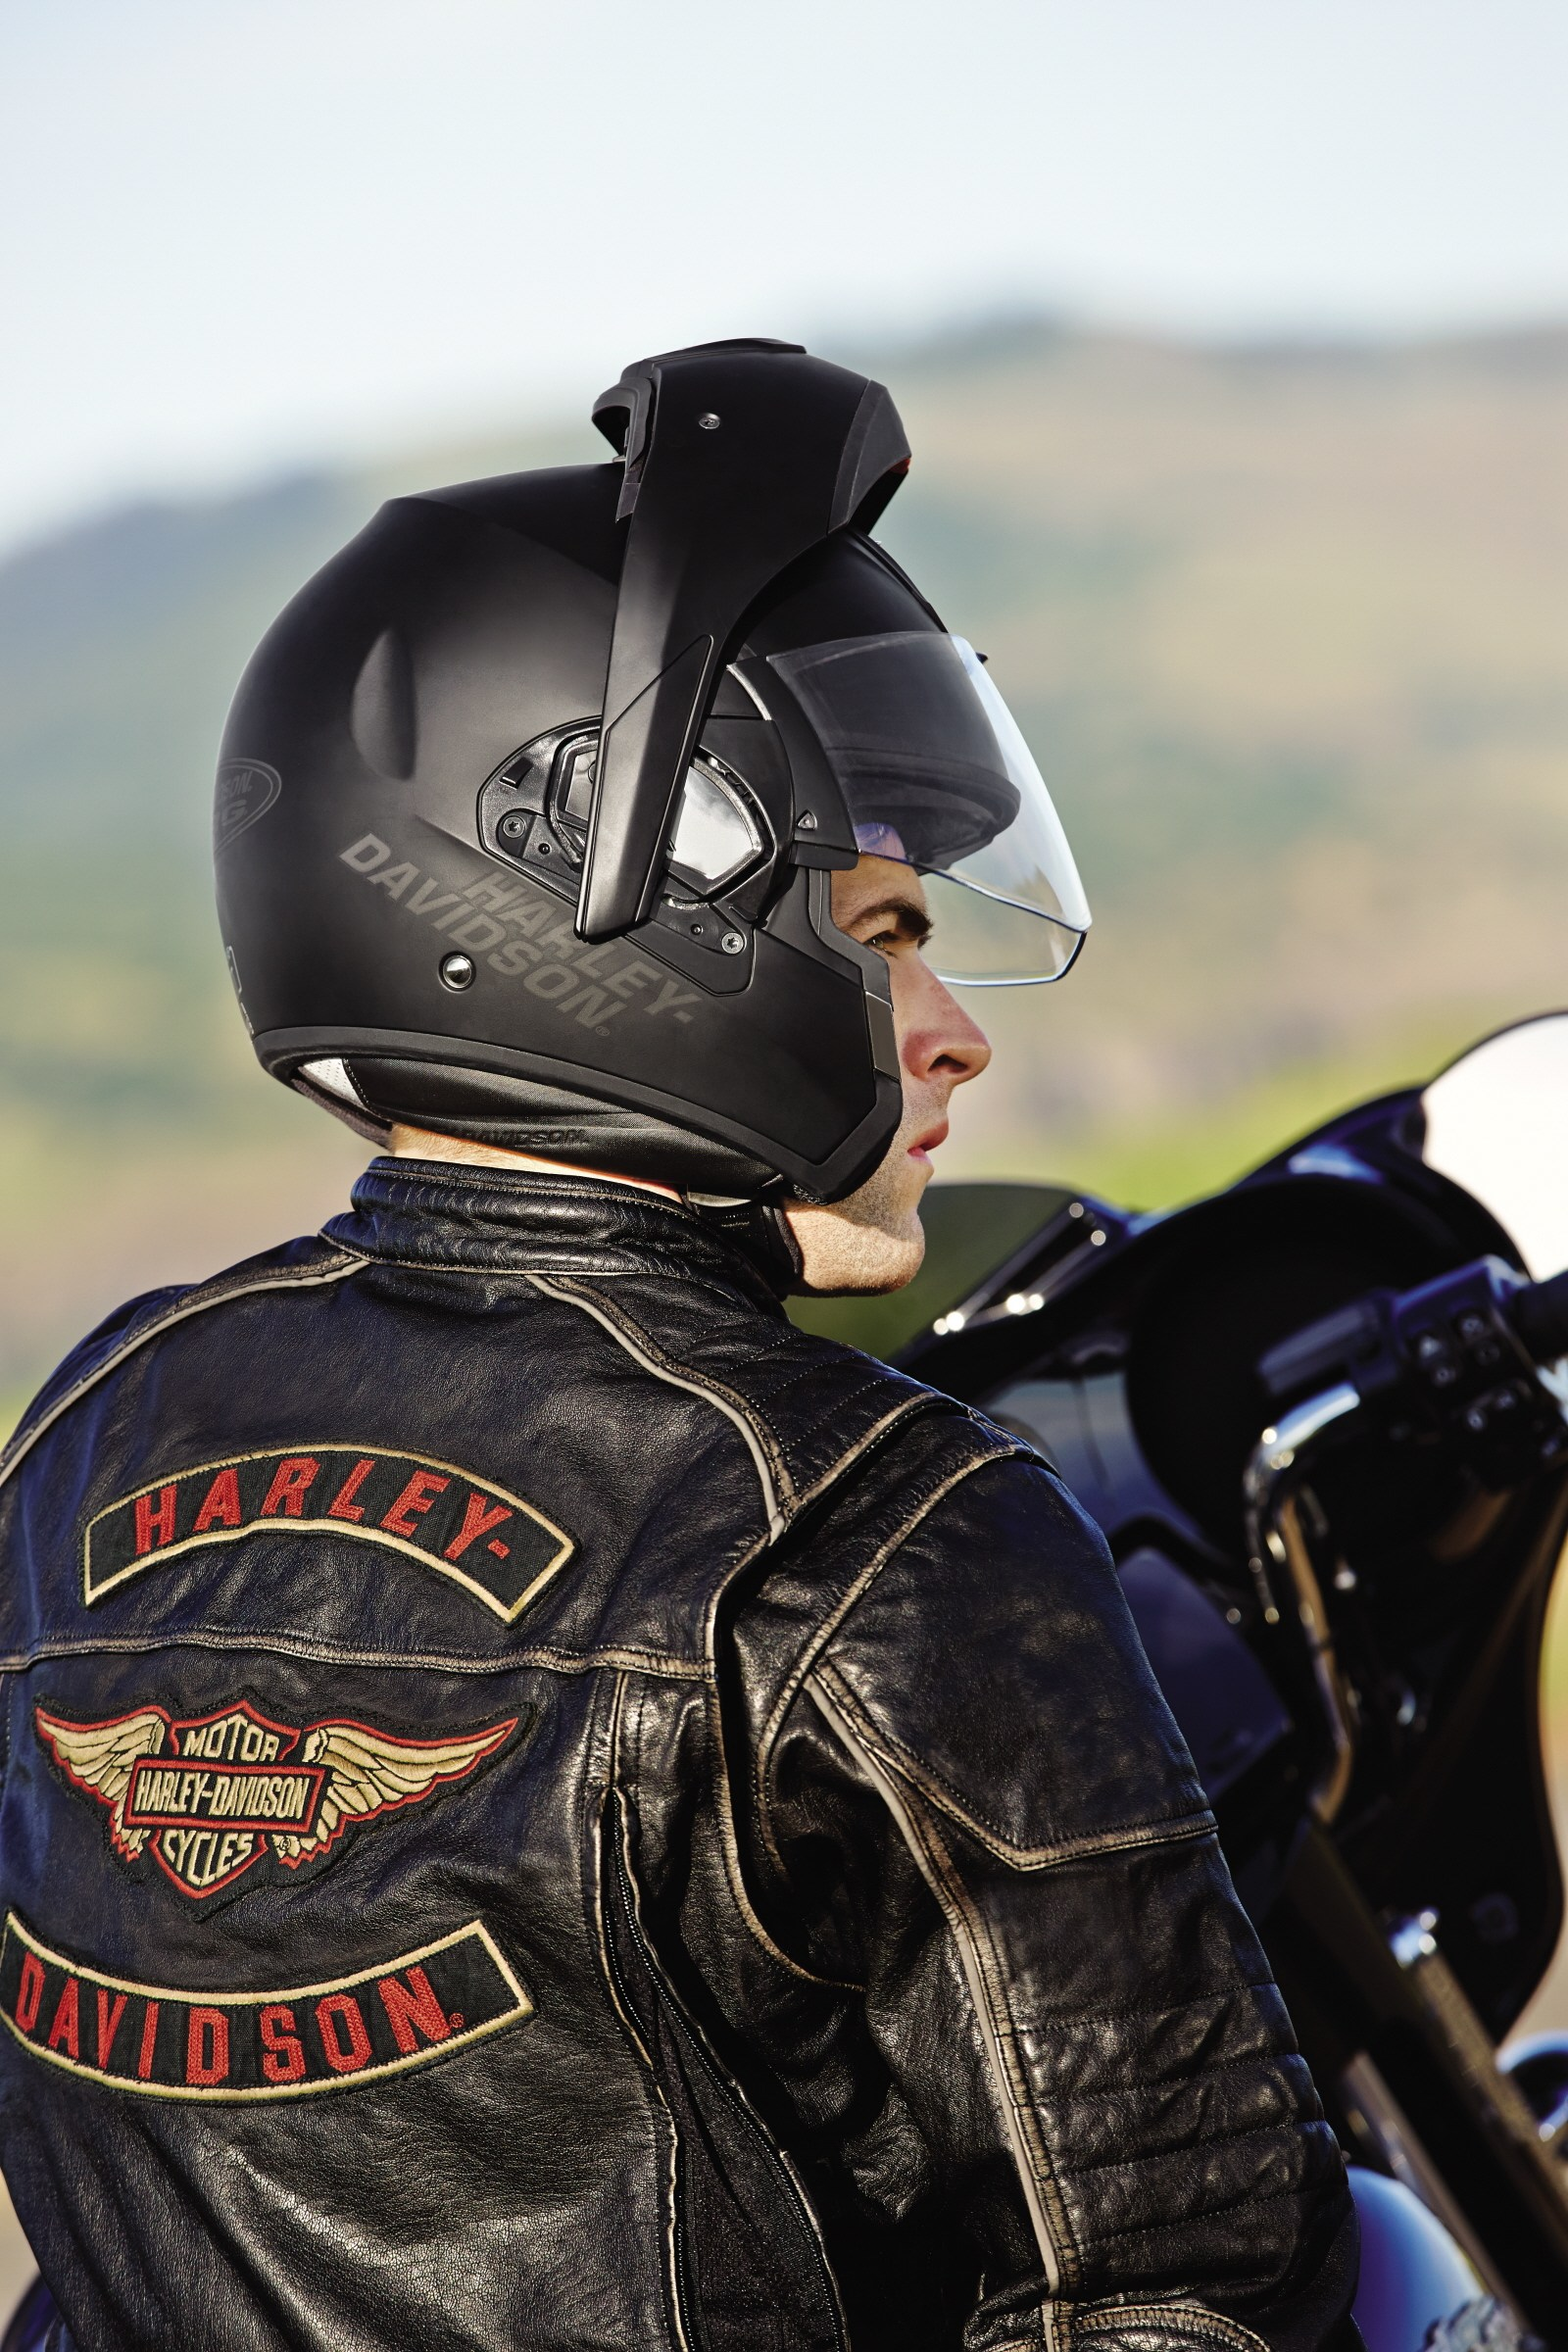 Harley Davidson Motorclothes Releases New Jacket And